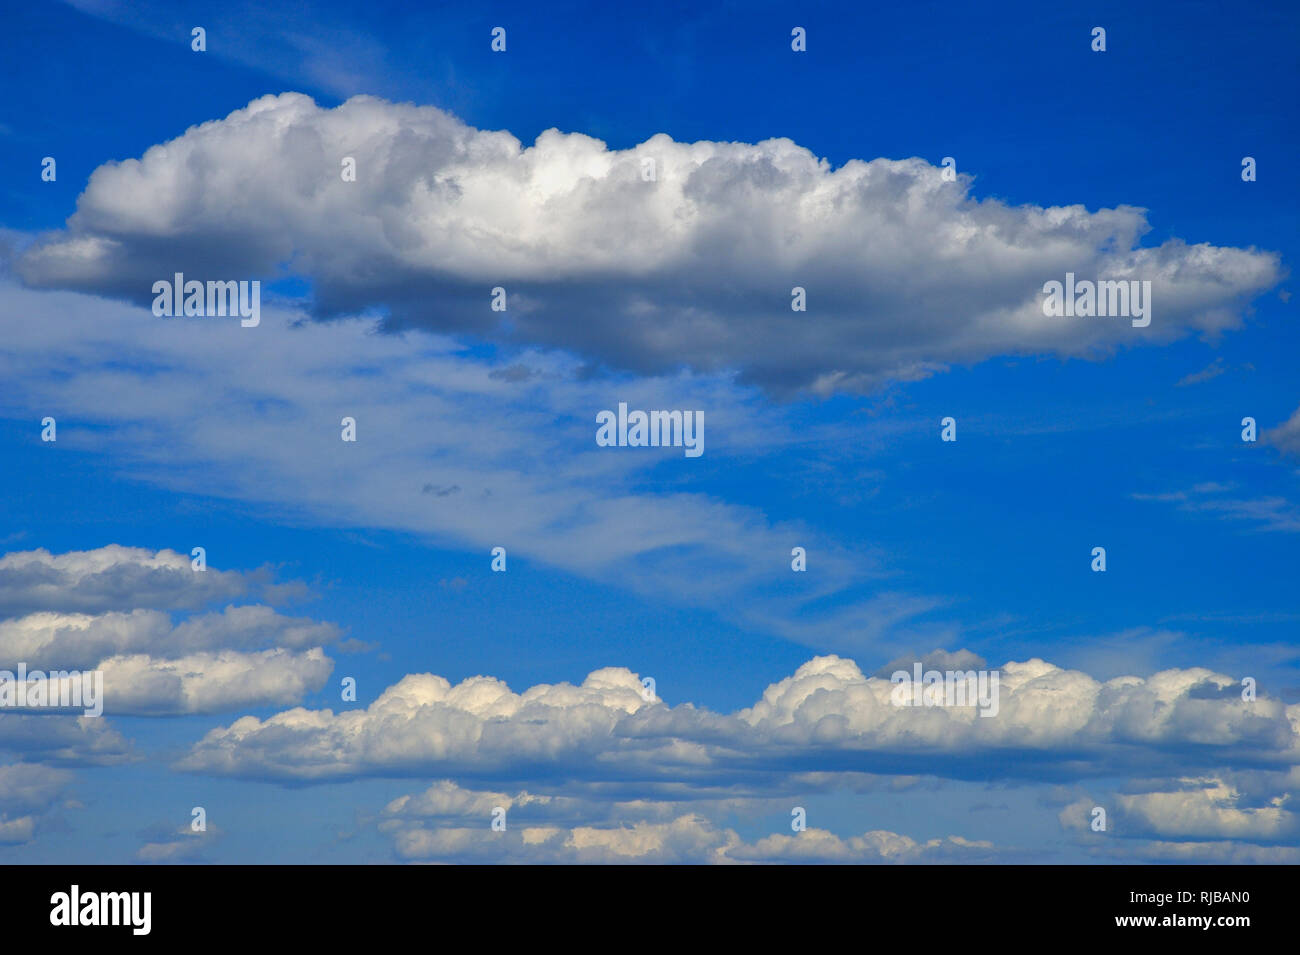 A horizontal image of a blue sky with white fluffy clouds floating by in Alberta Canada. - Stock Image